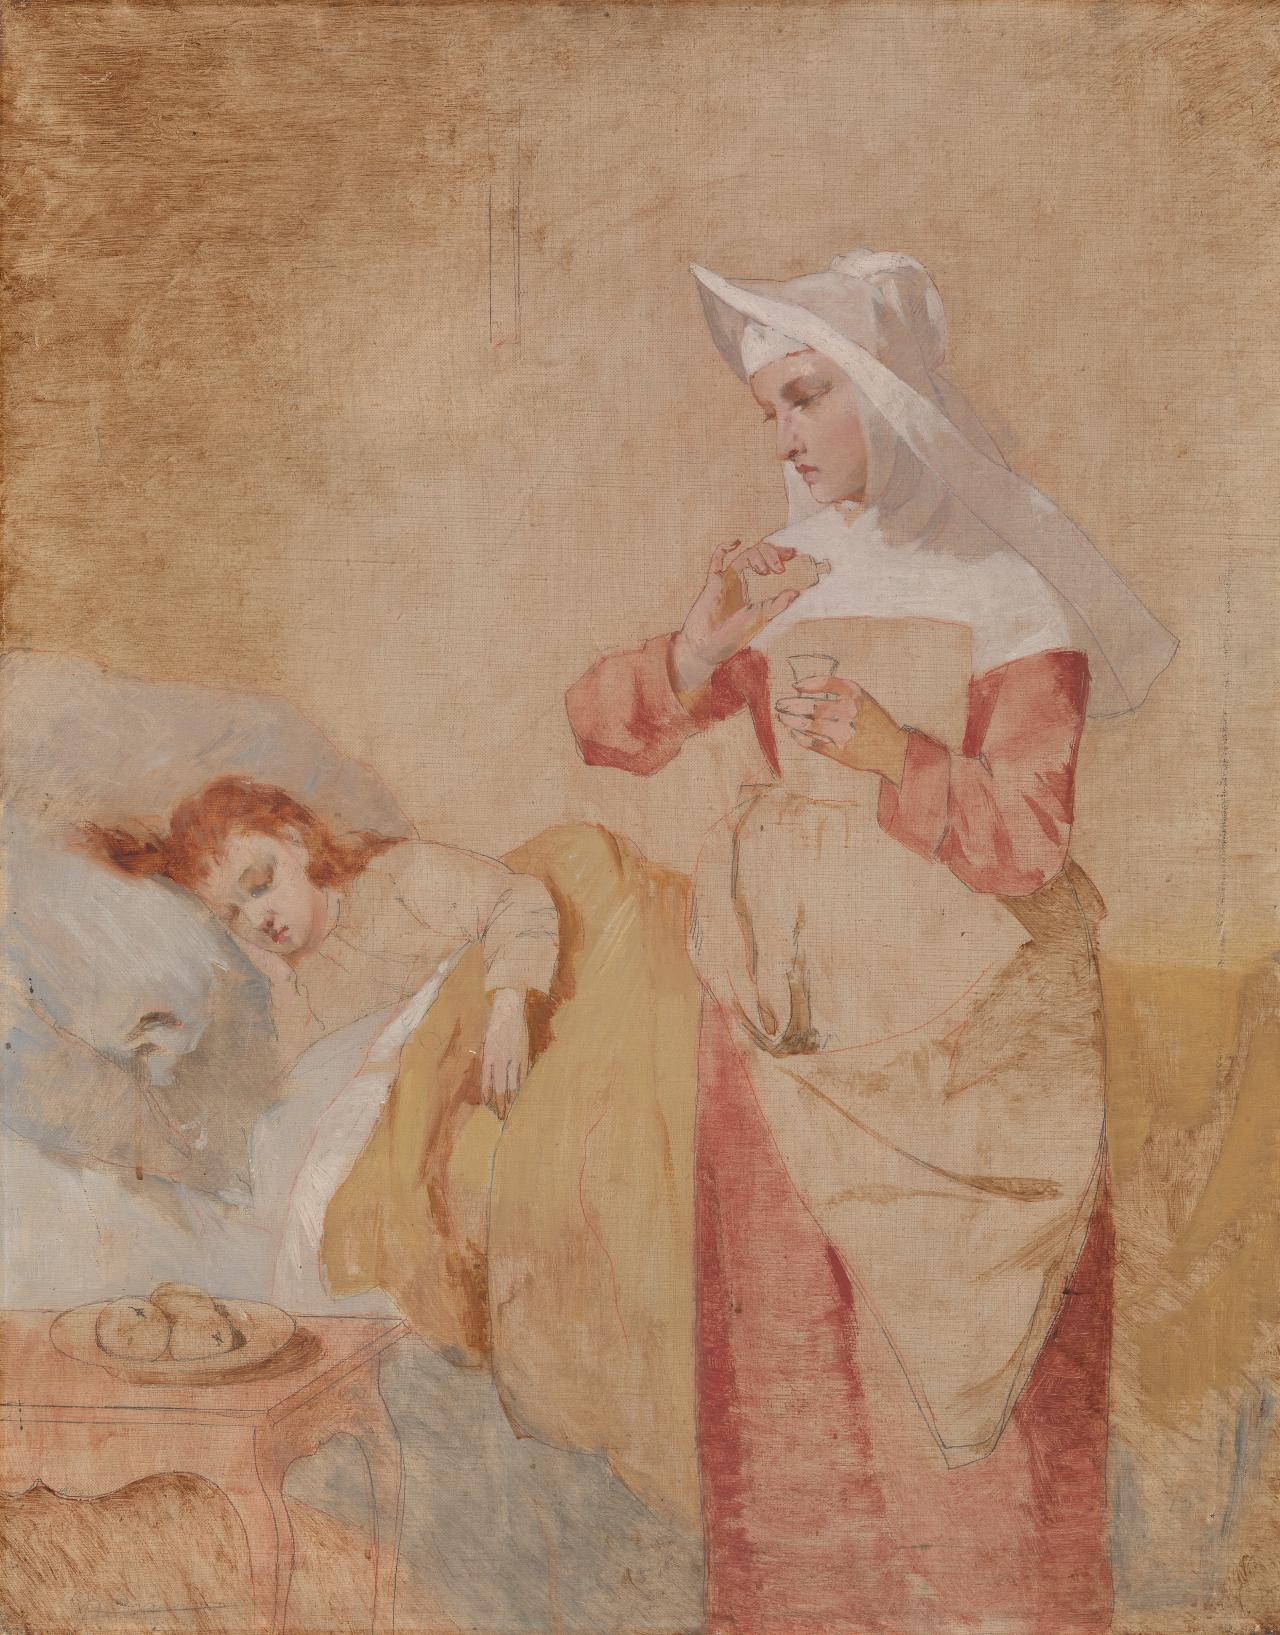 (Study of a nun and sick child)